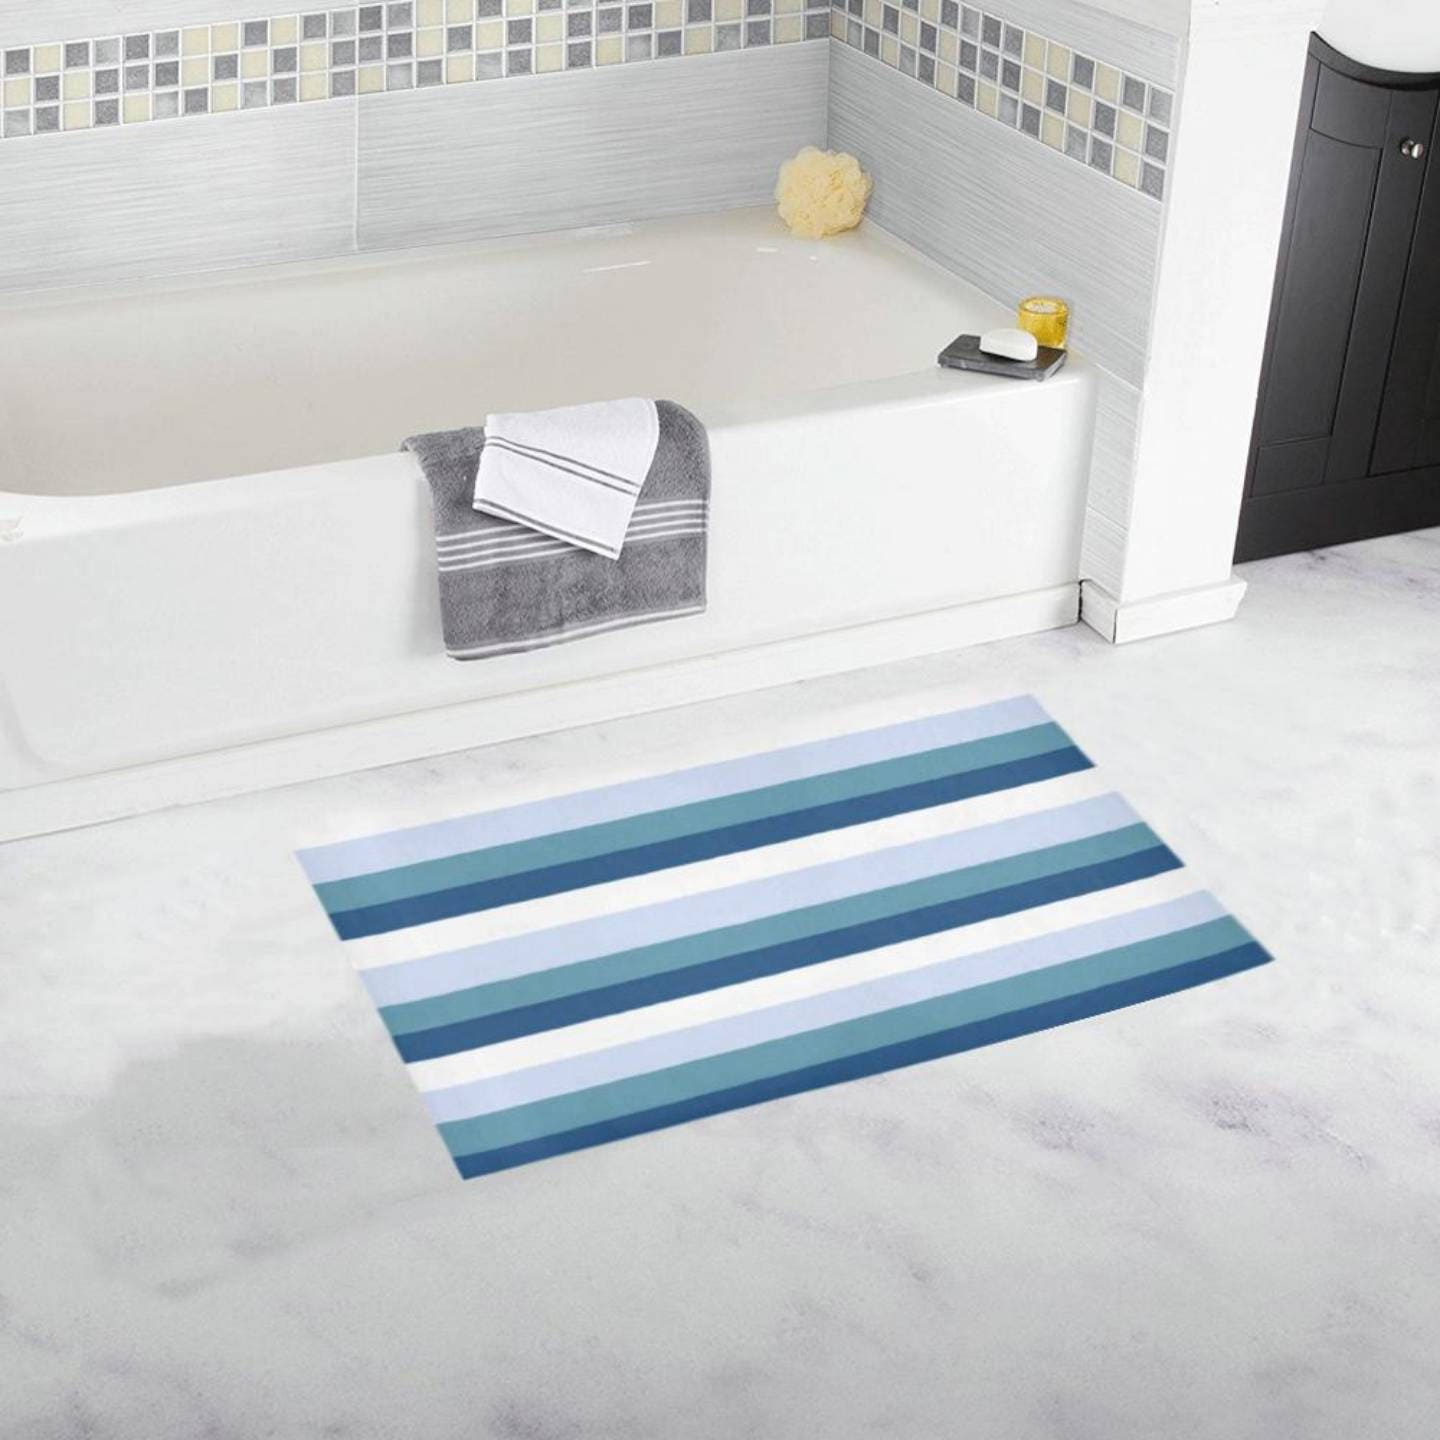 Bath Rug 16 X 28 1 Other Size & 4 Colors FREE